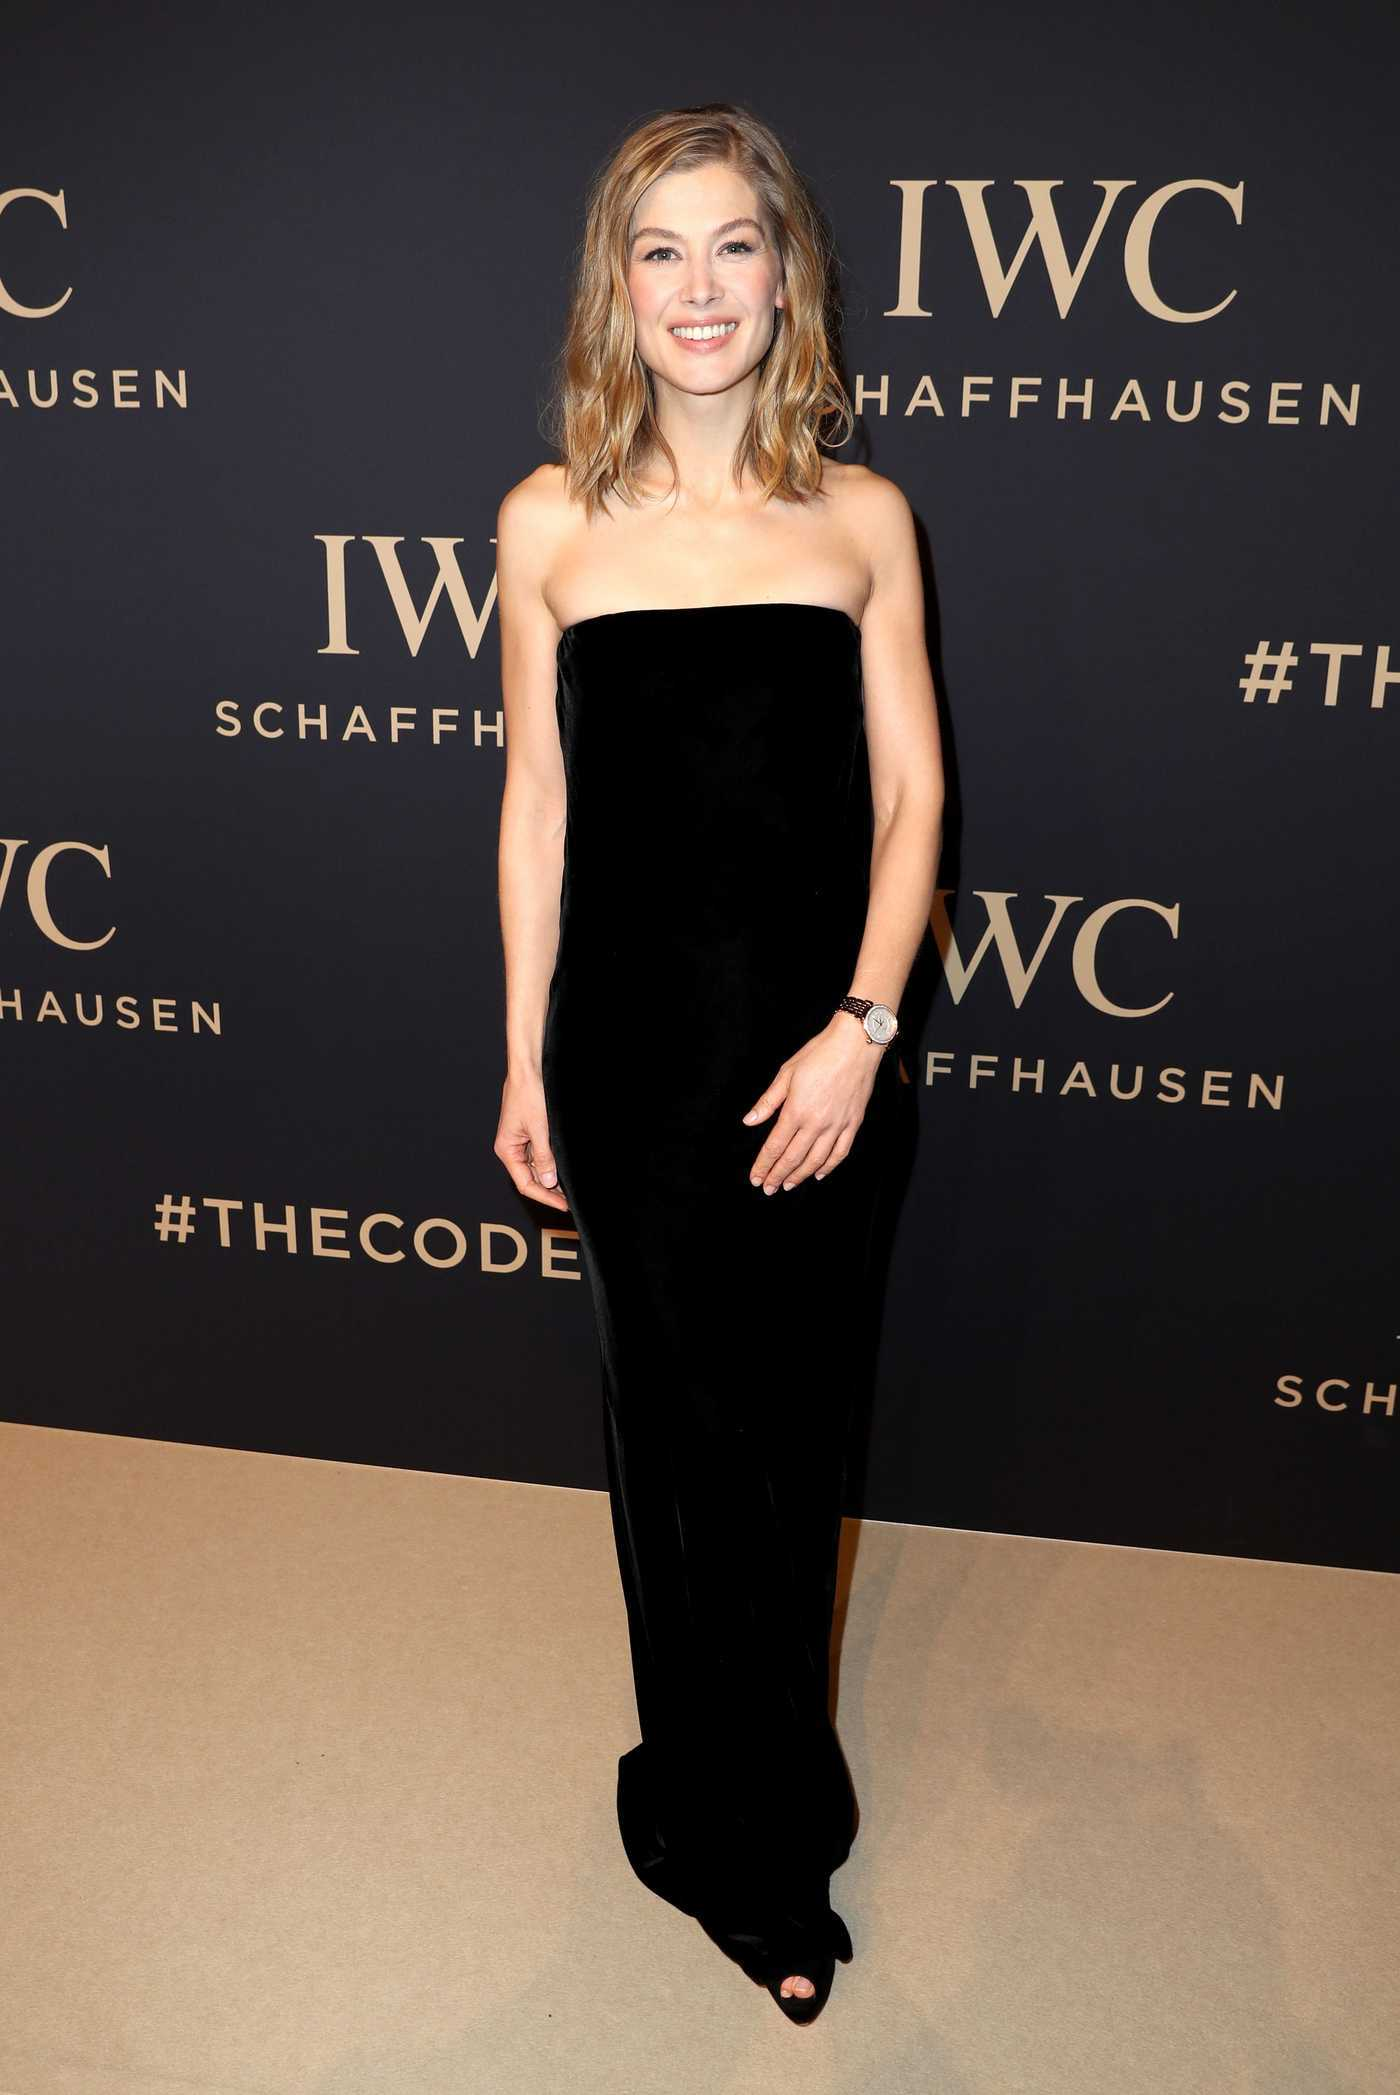 Rosamund Pike at the IWC Gala Decoding the Beauty of Time in Geneva 01/17/2017